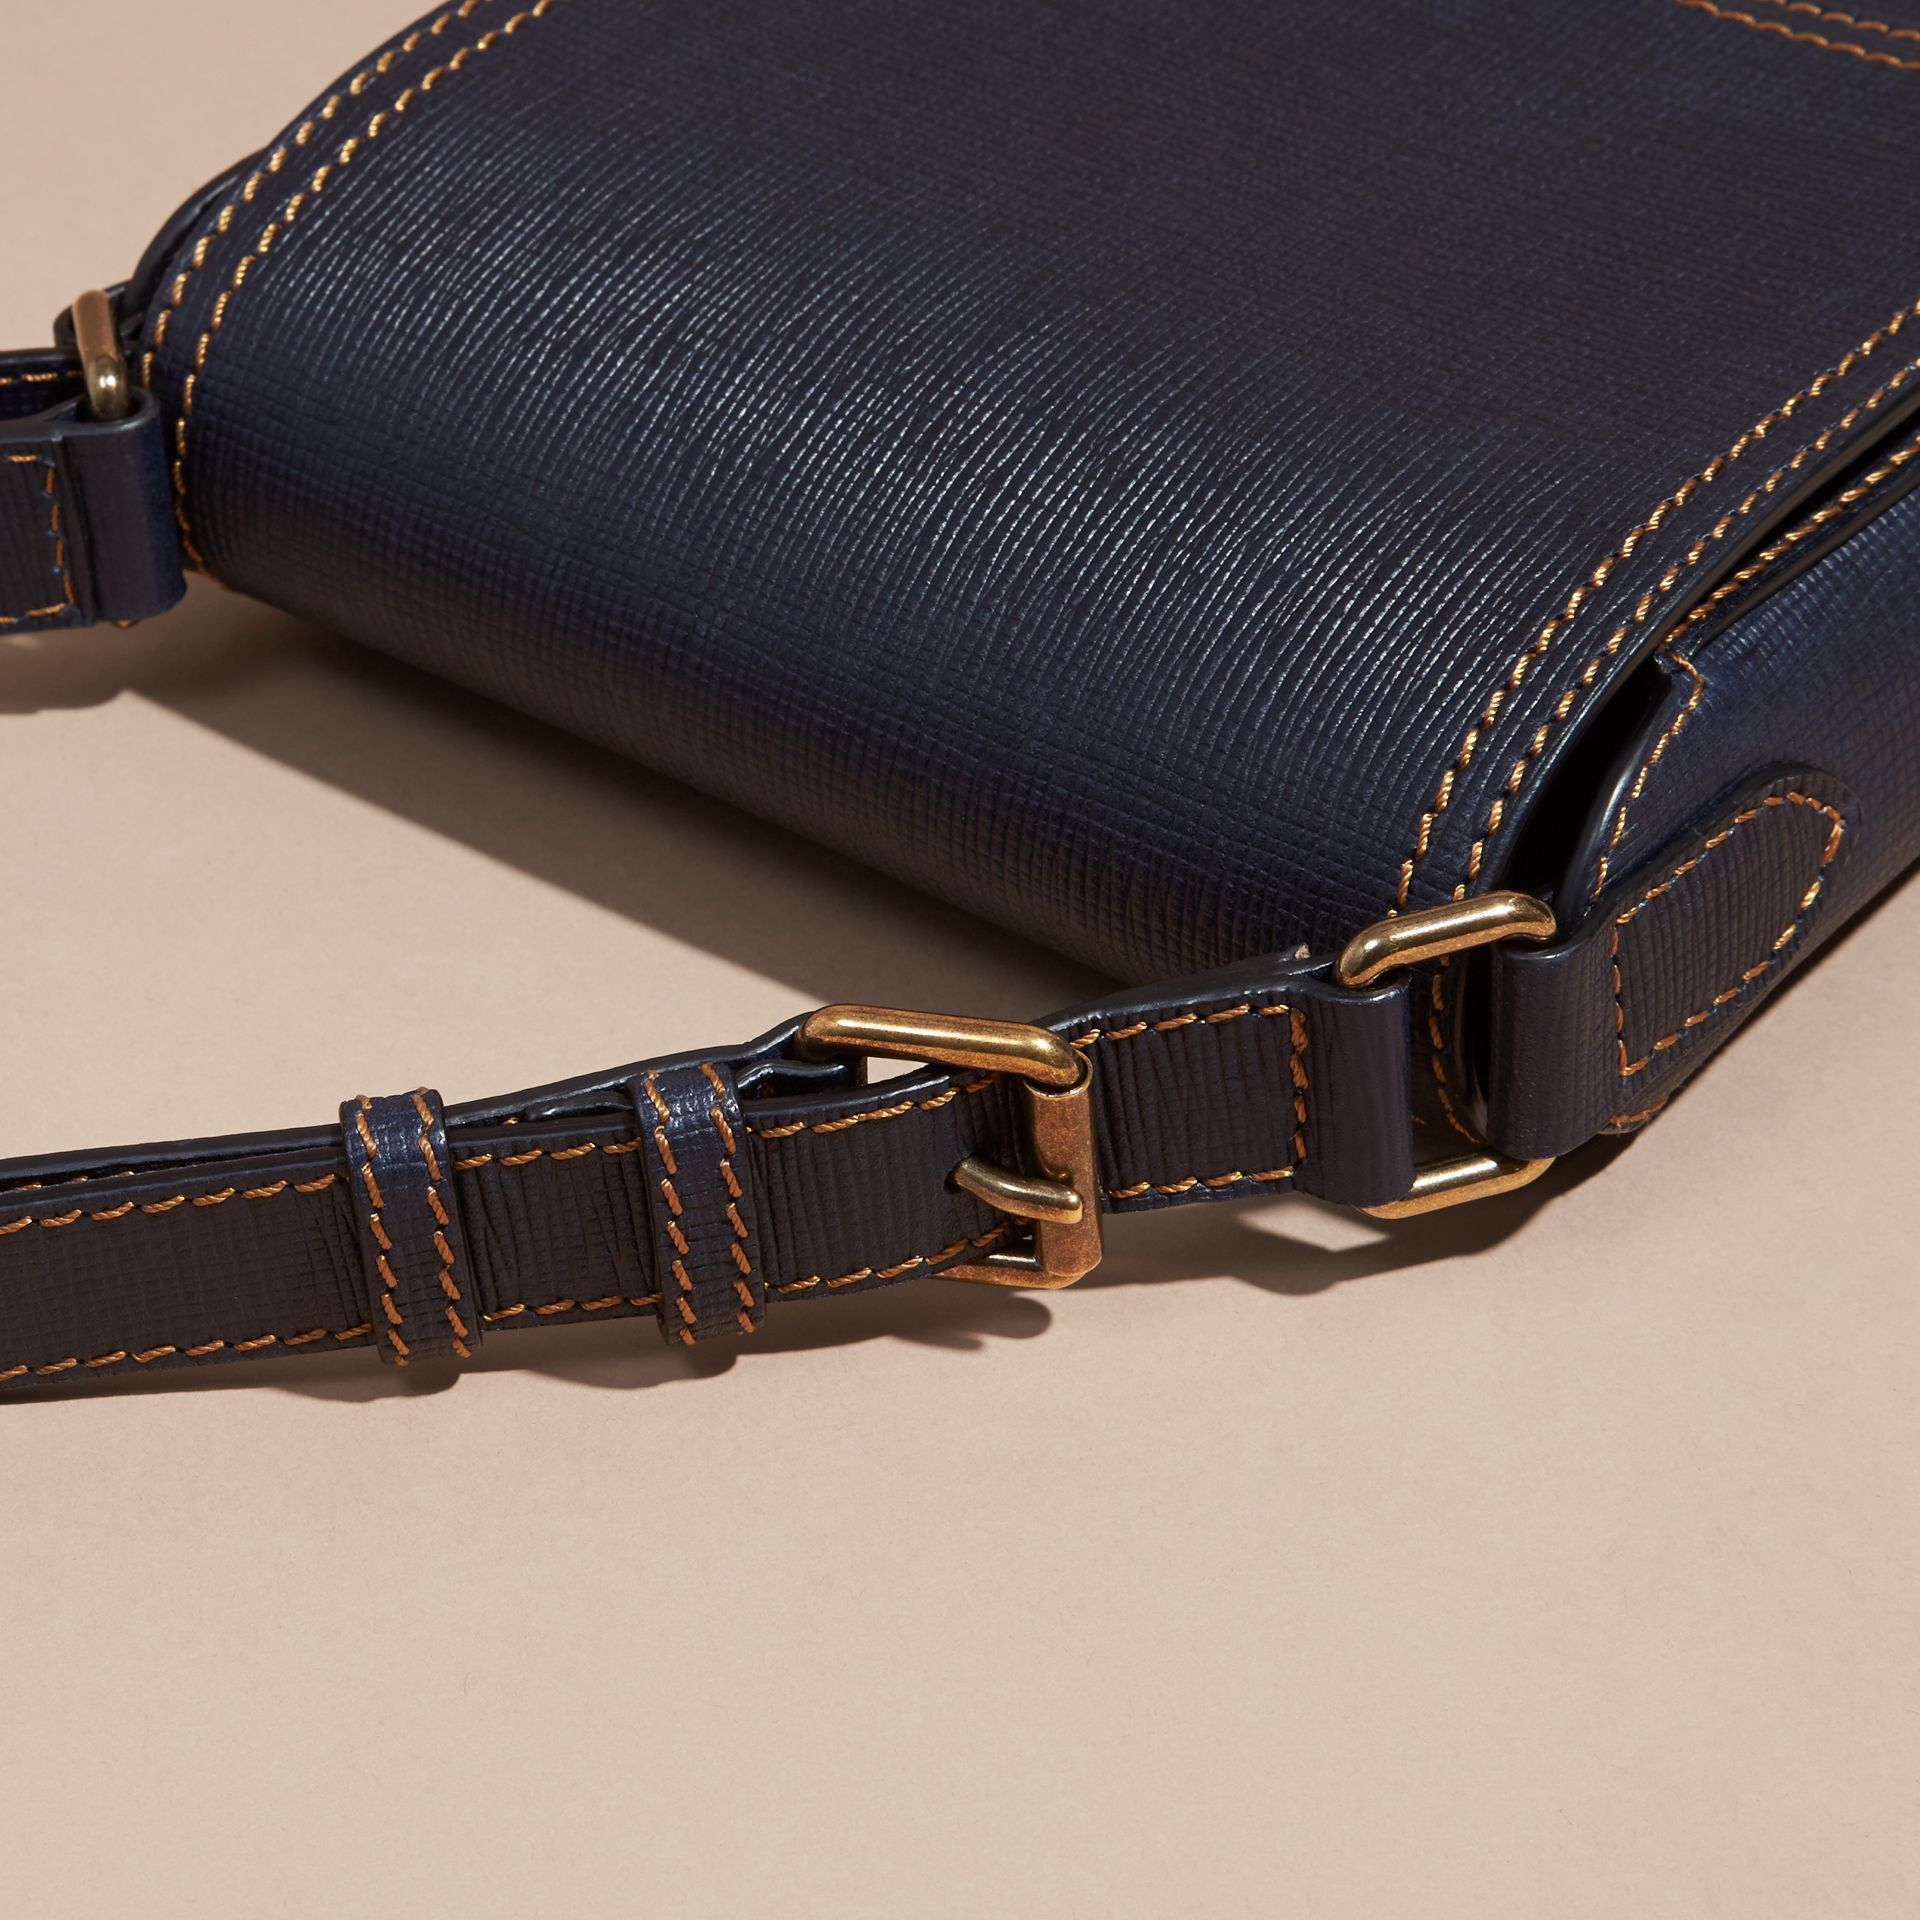 Dark navy The Small Satchel in Textured Leather - gallery image 6